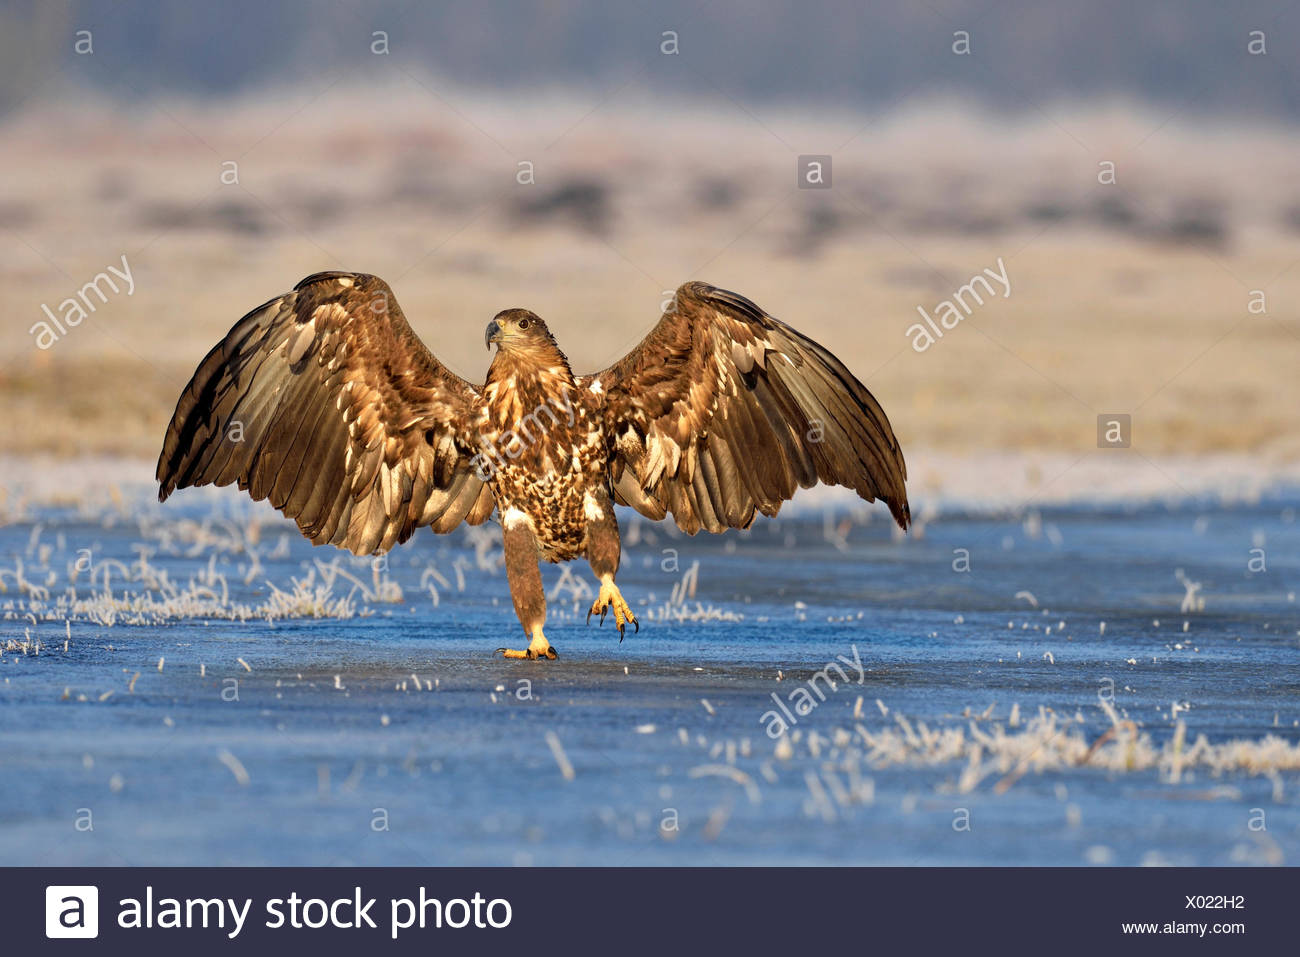 White-tailed Eagle (Haliaeetus albicilla), hopping on ice, Poland - Stock Image